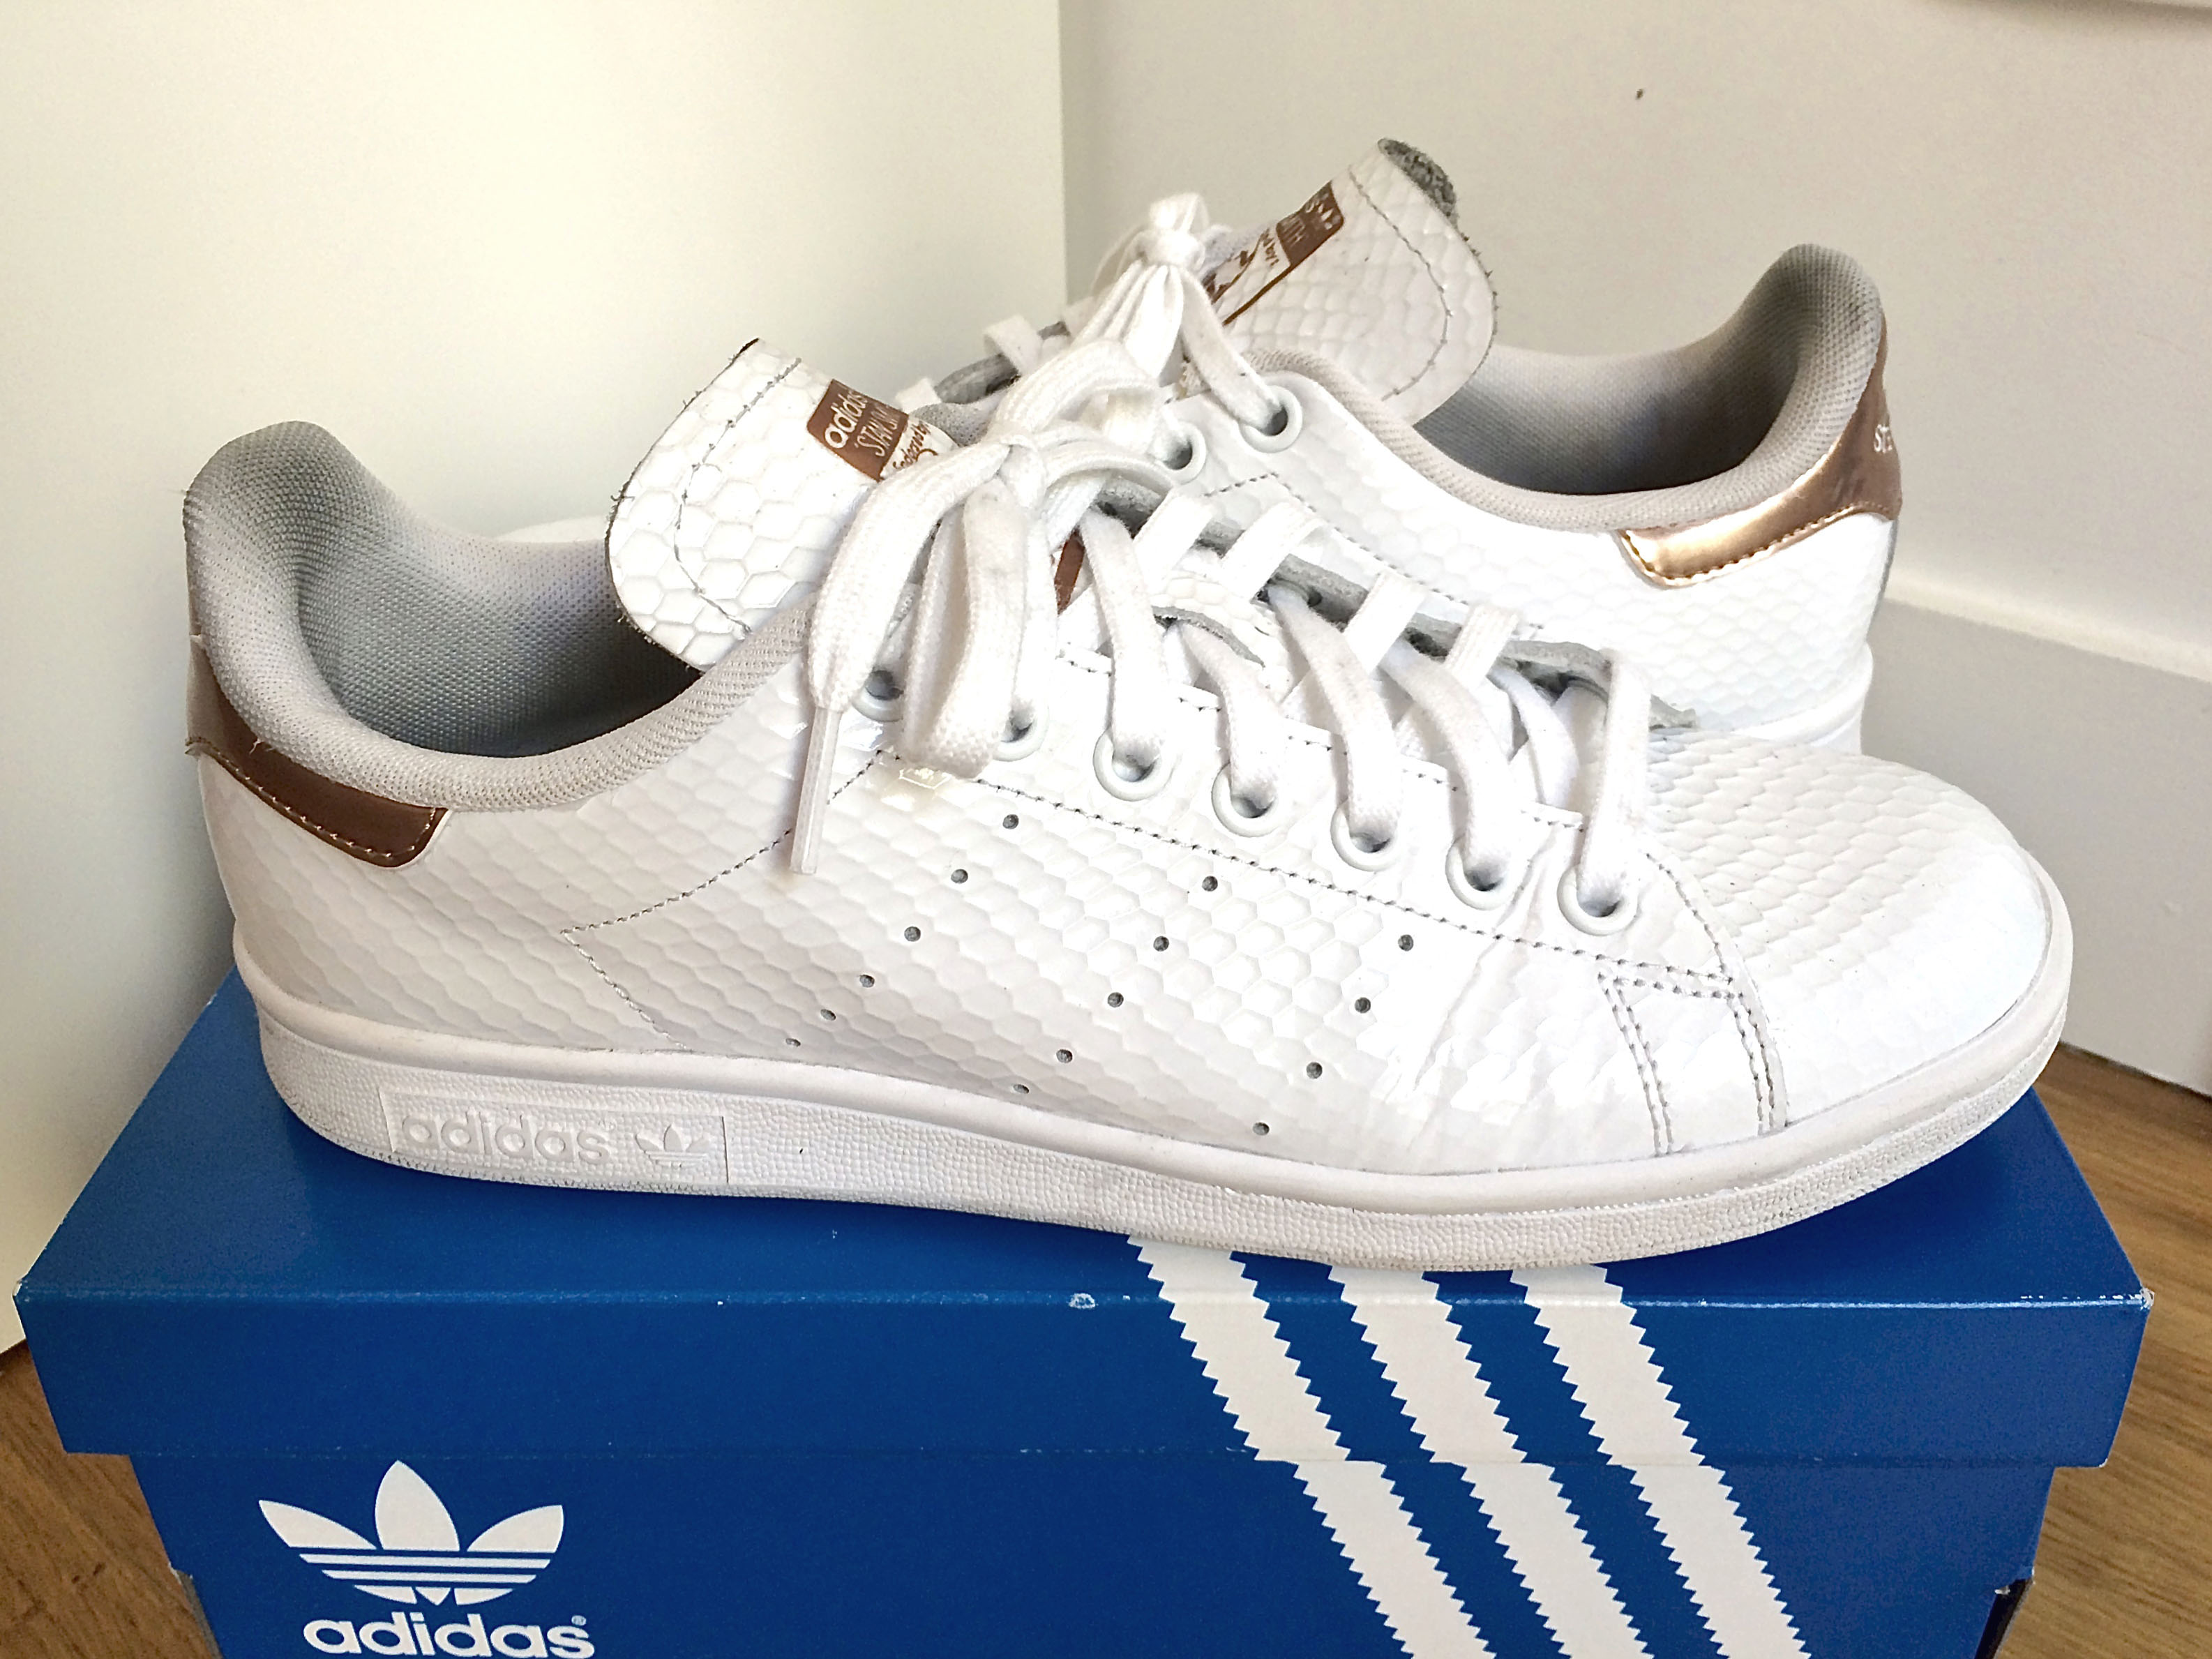 100% Authentique adidas stan smith gloss rose gold Outlet en